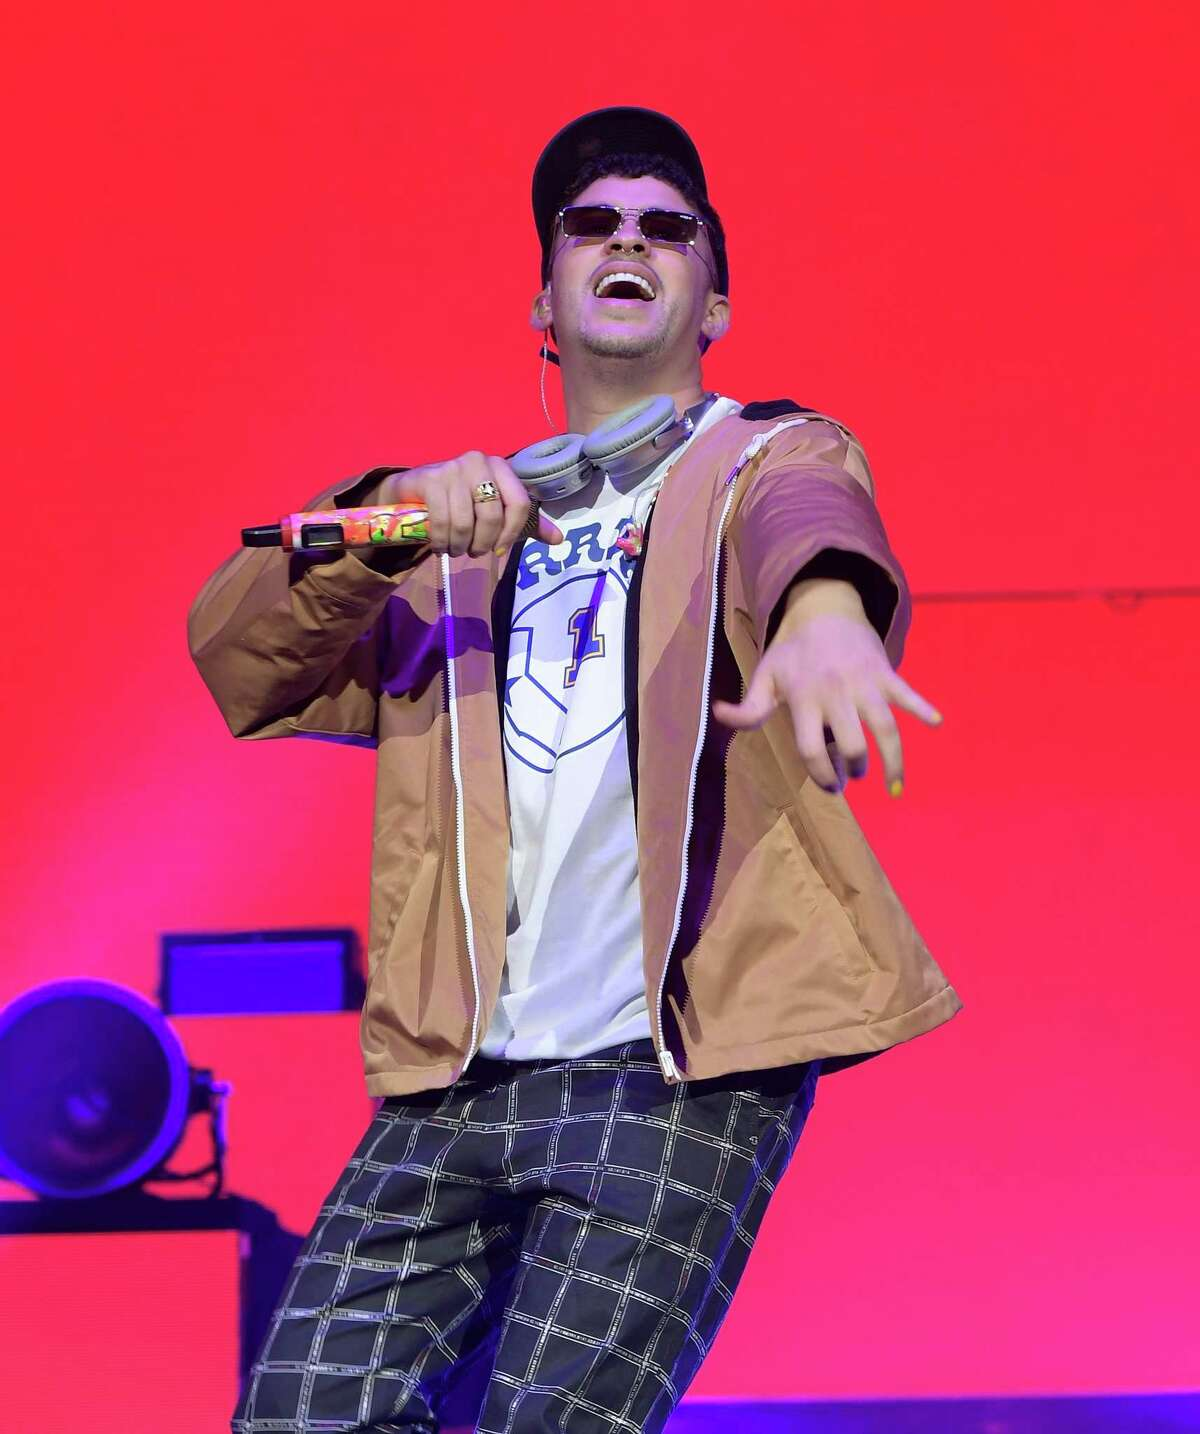 """Bad Bunny: Puerto Rican rapper is the latest of the new wave of reggaeton stars to pass through town, in the wake of J. Balvin and Maluma, and he may be the hottest. He's on Cardi B's """"I Like It,"""" one of the songs of the summer, has a project in the works with Drake and is the cover star of Fader magazine's fall fashion issue. And he hasn't even released an album yet. His work is scattered across his singles, such as """"Estamos Bien,"""" and guest appearances on tracks by other artists, like the remix of """"Te Bote,"""" a monster hit. 8 p.m. Friday. Freeman Coliseum, 3201 E. Houston St. $39-$139. freemancoliseum.com - Jim Kiest"""